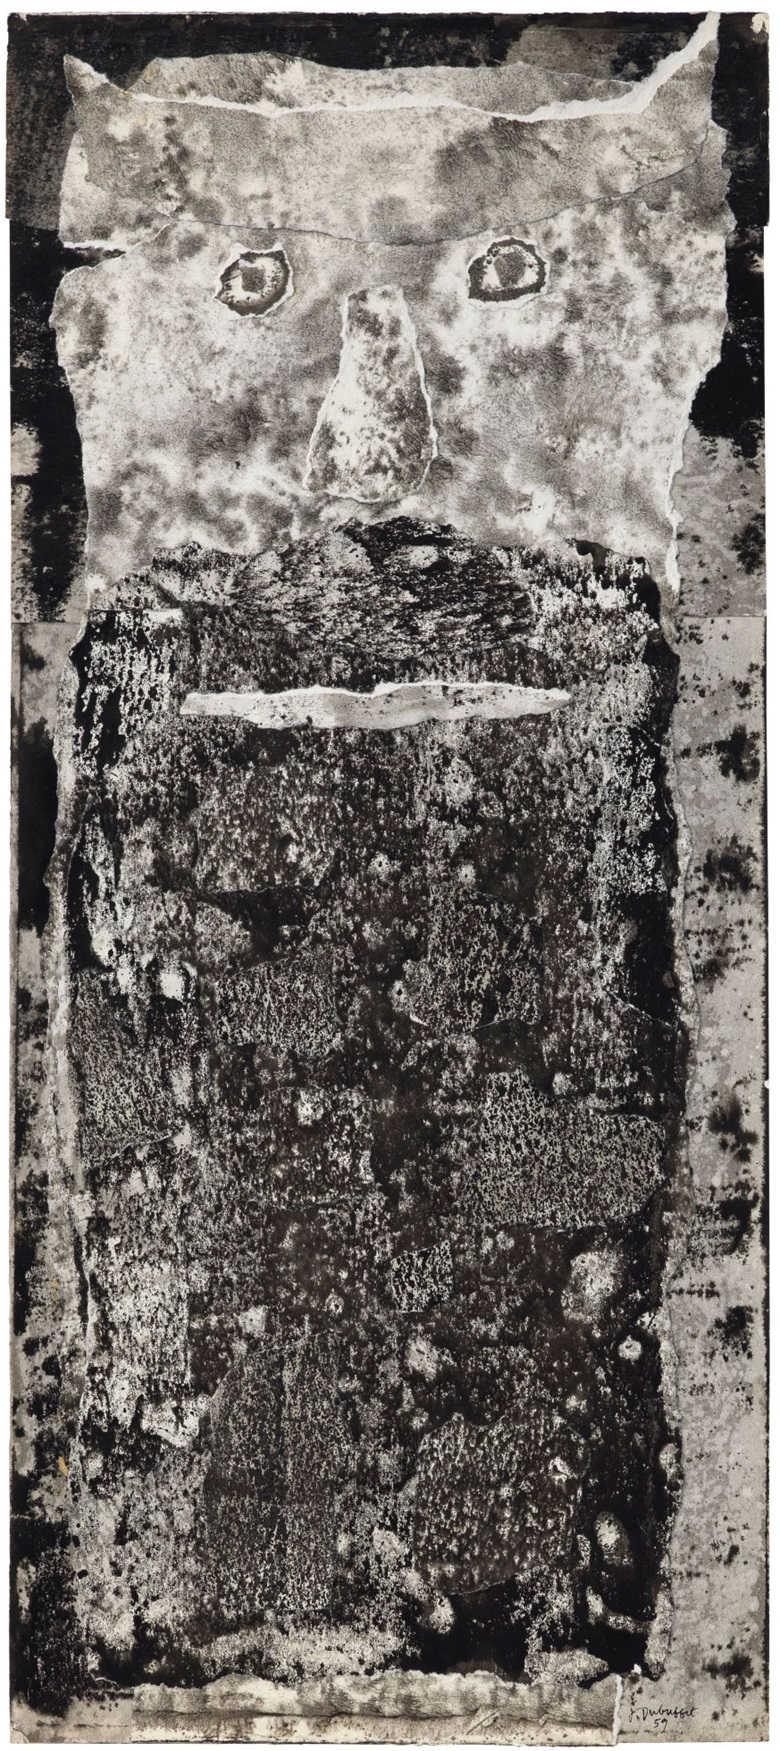 Jean Dubuffet (1901-1985), Barbe du Seigneur Mongol, 1959. Signed and dated J. Dubuffet 59 (lower right); titled and dated again 'Barbe du seigneur mongol juin 59'(on the reverse). India ink and paper collage on paper. 30 x 13 18 in (76.2 x 33.3 cm). Offered in the Post-War and Contemporary Art Evening Sale in November 2018 at Christie's in New York